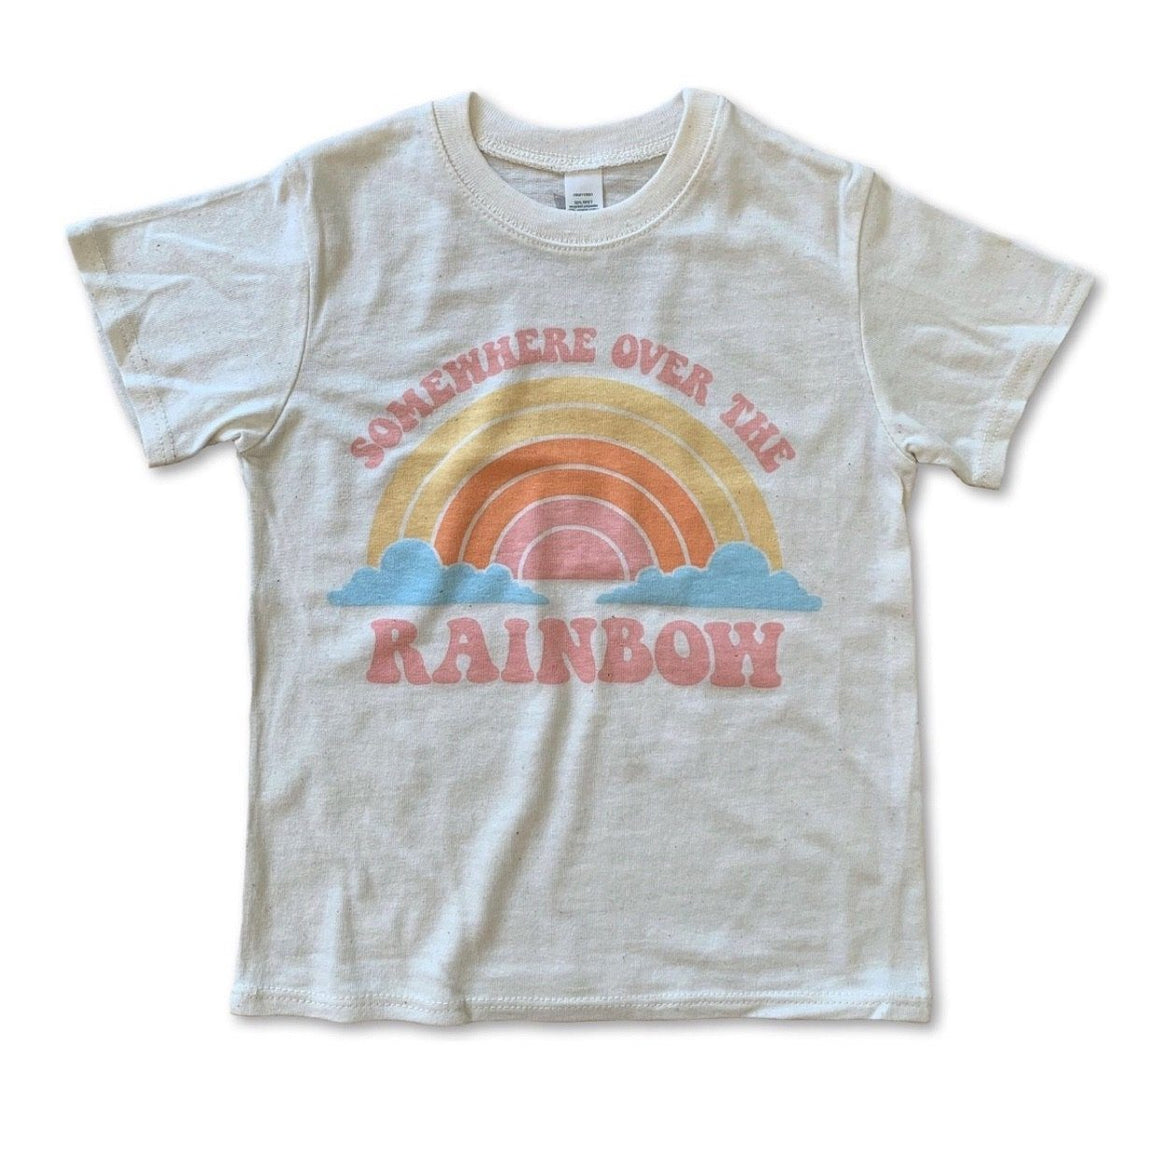 Rivet Apparel Co. - Over the Rainbow Unisex T-shirt Short Sleeve Shirts Rivet Apparel Co.